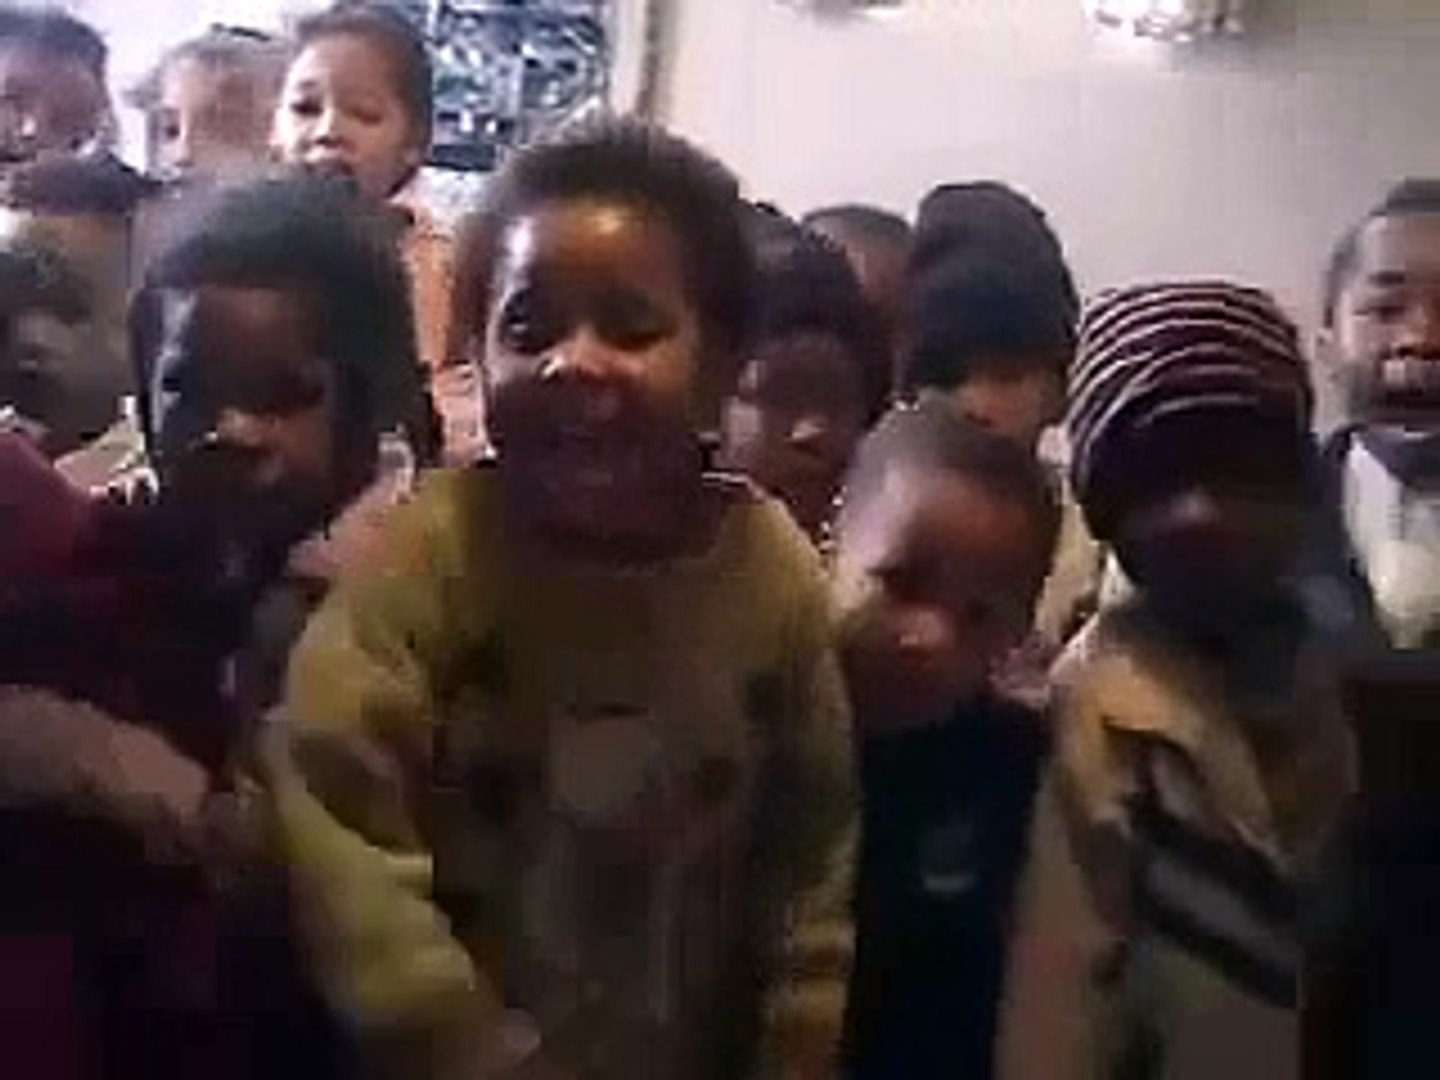 African Kids . South Africa 2003